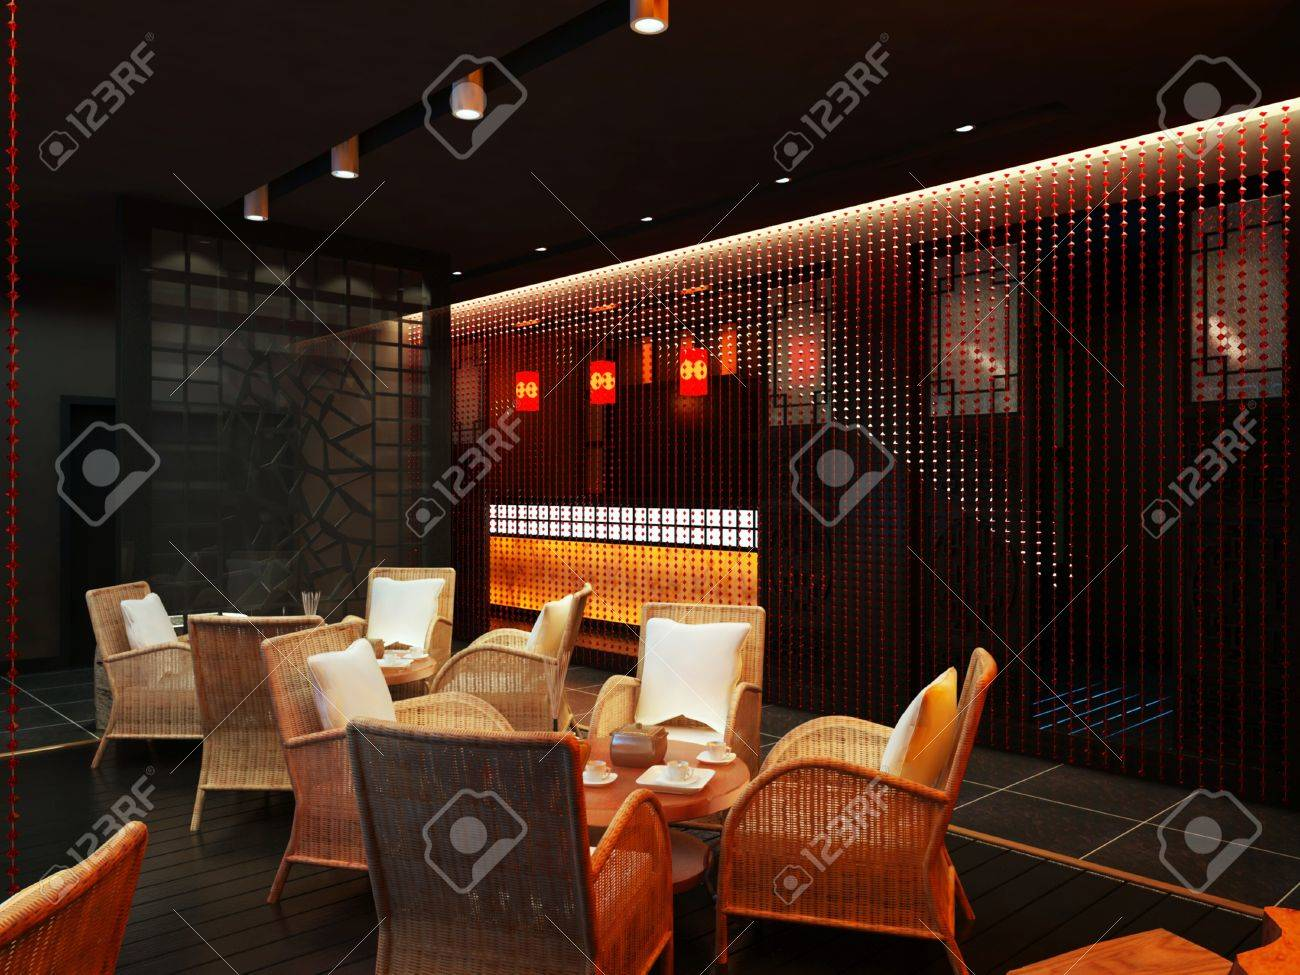 The tea bar with rattan chairs and table Stock Photo - 9165256